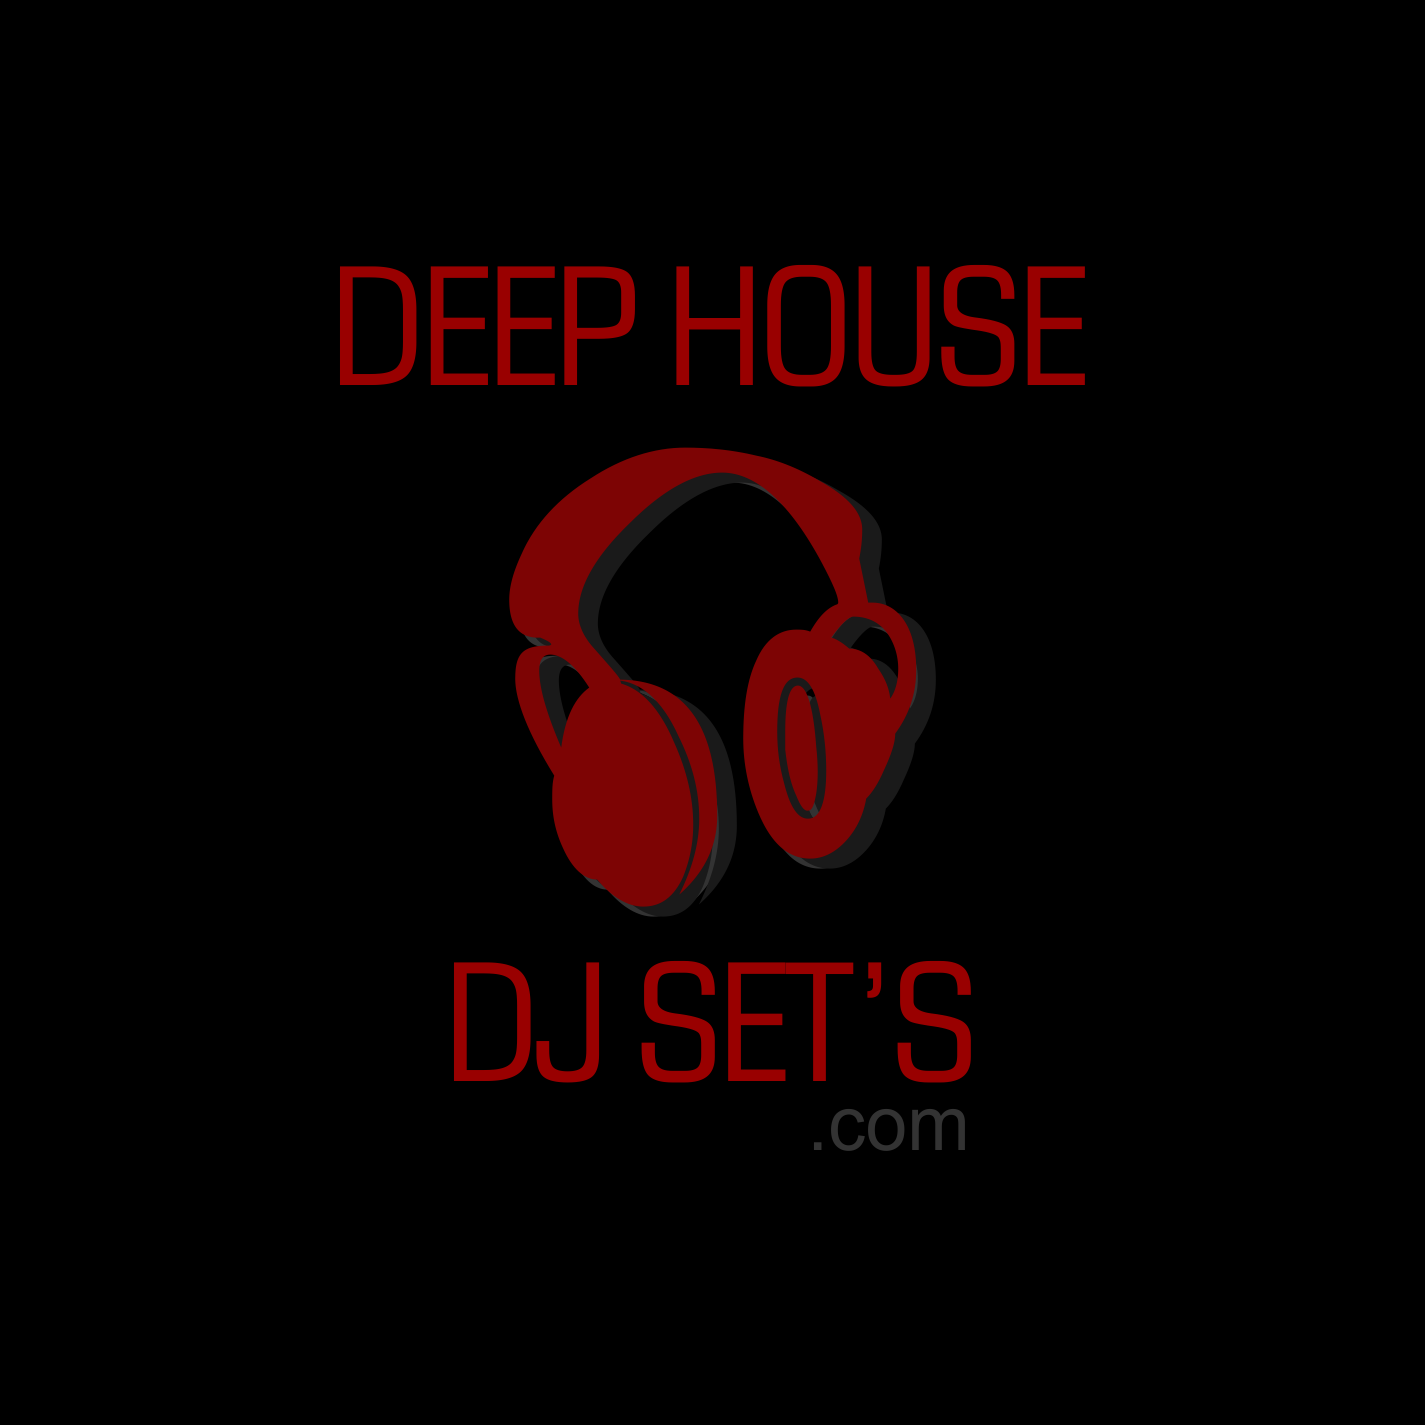 Deep House DJ Set's - Episode 6